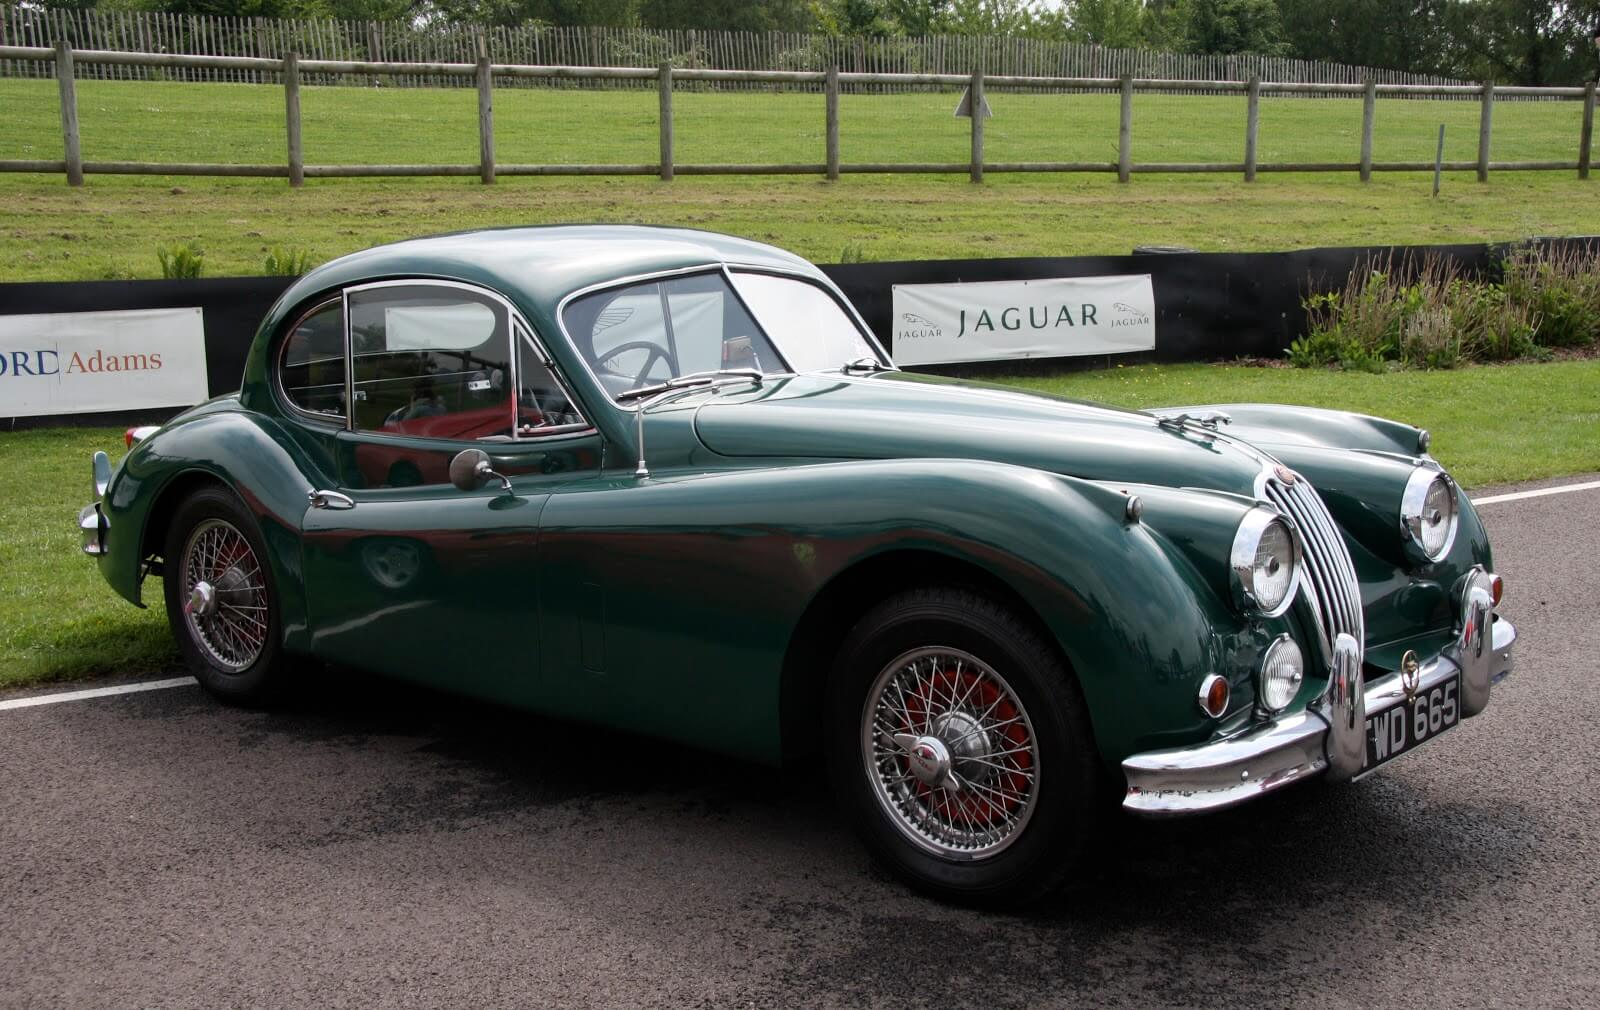 5 Of The Best British Classic Cars From The 1950s Carole Nash